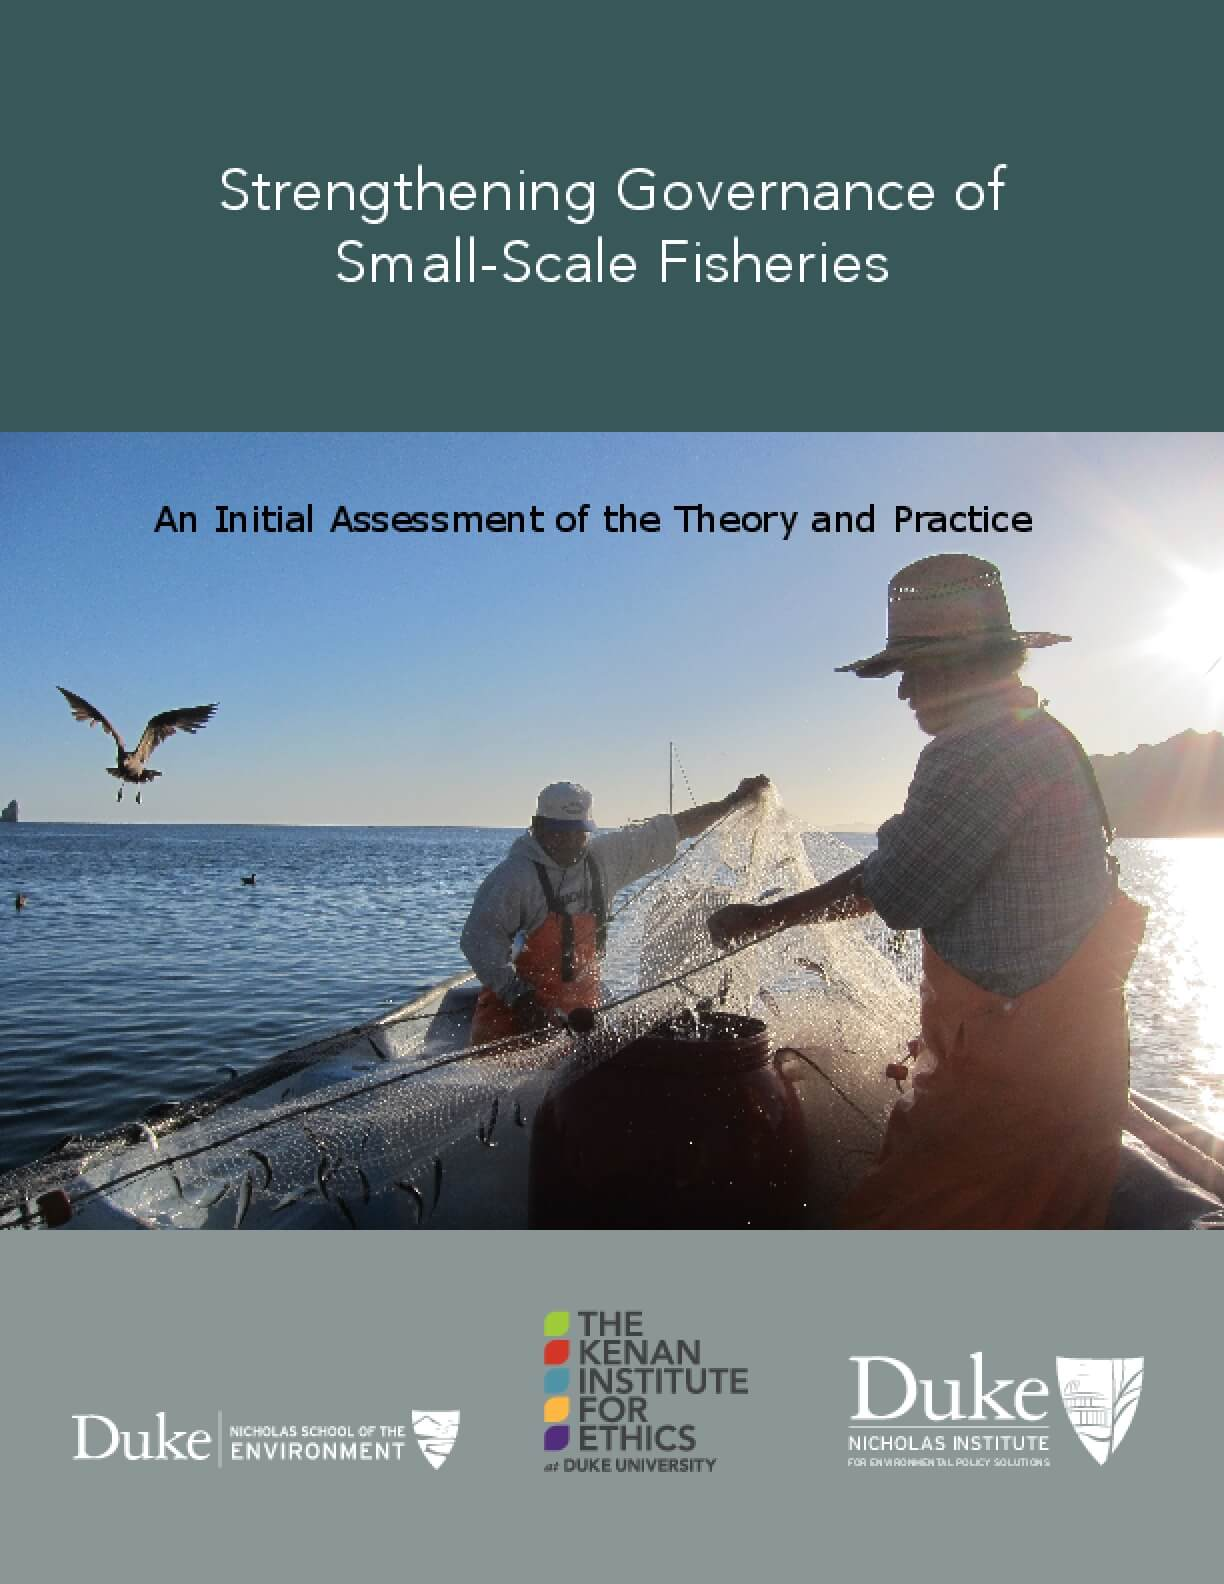 Strengthening Governance of Small-Scale Fisheries: An Initial Assessment of the Theory and Practice